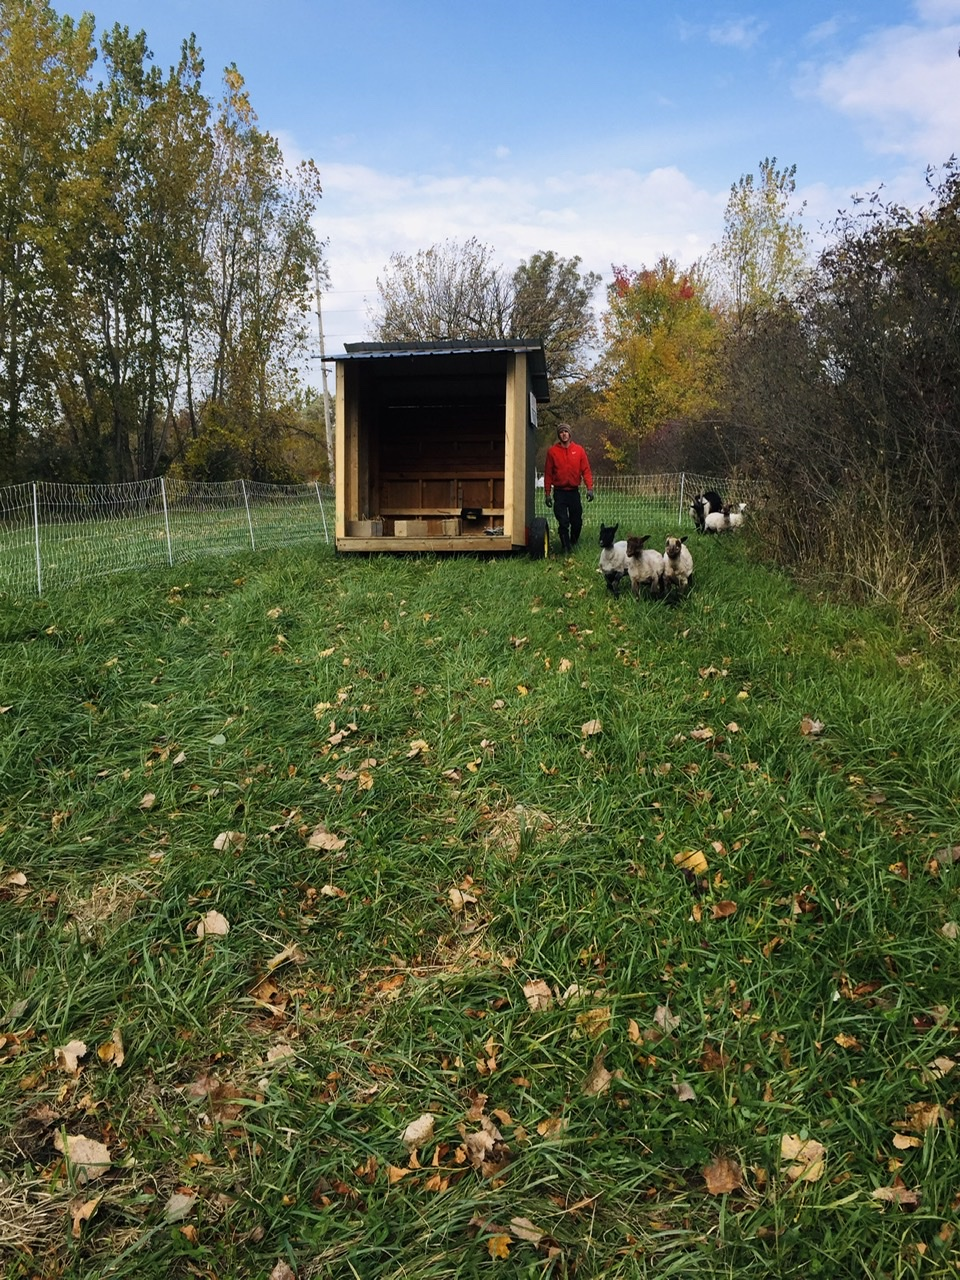 Farm Happenings for October 21, 2020